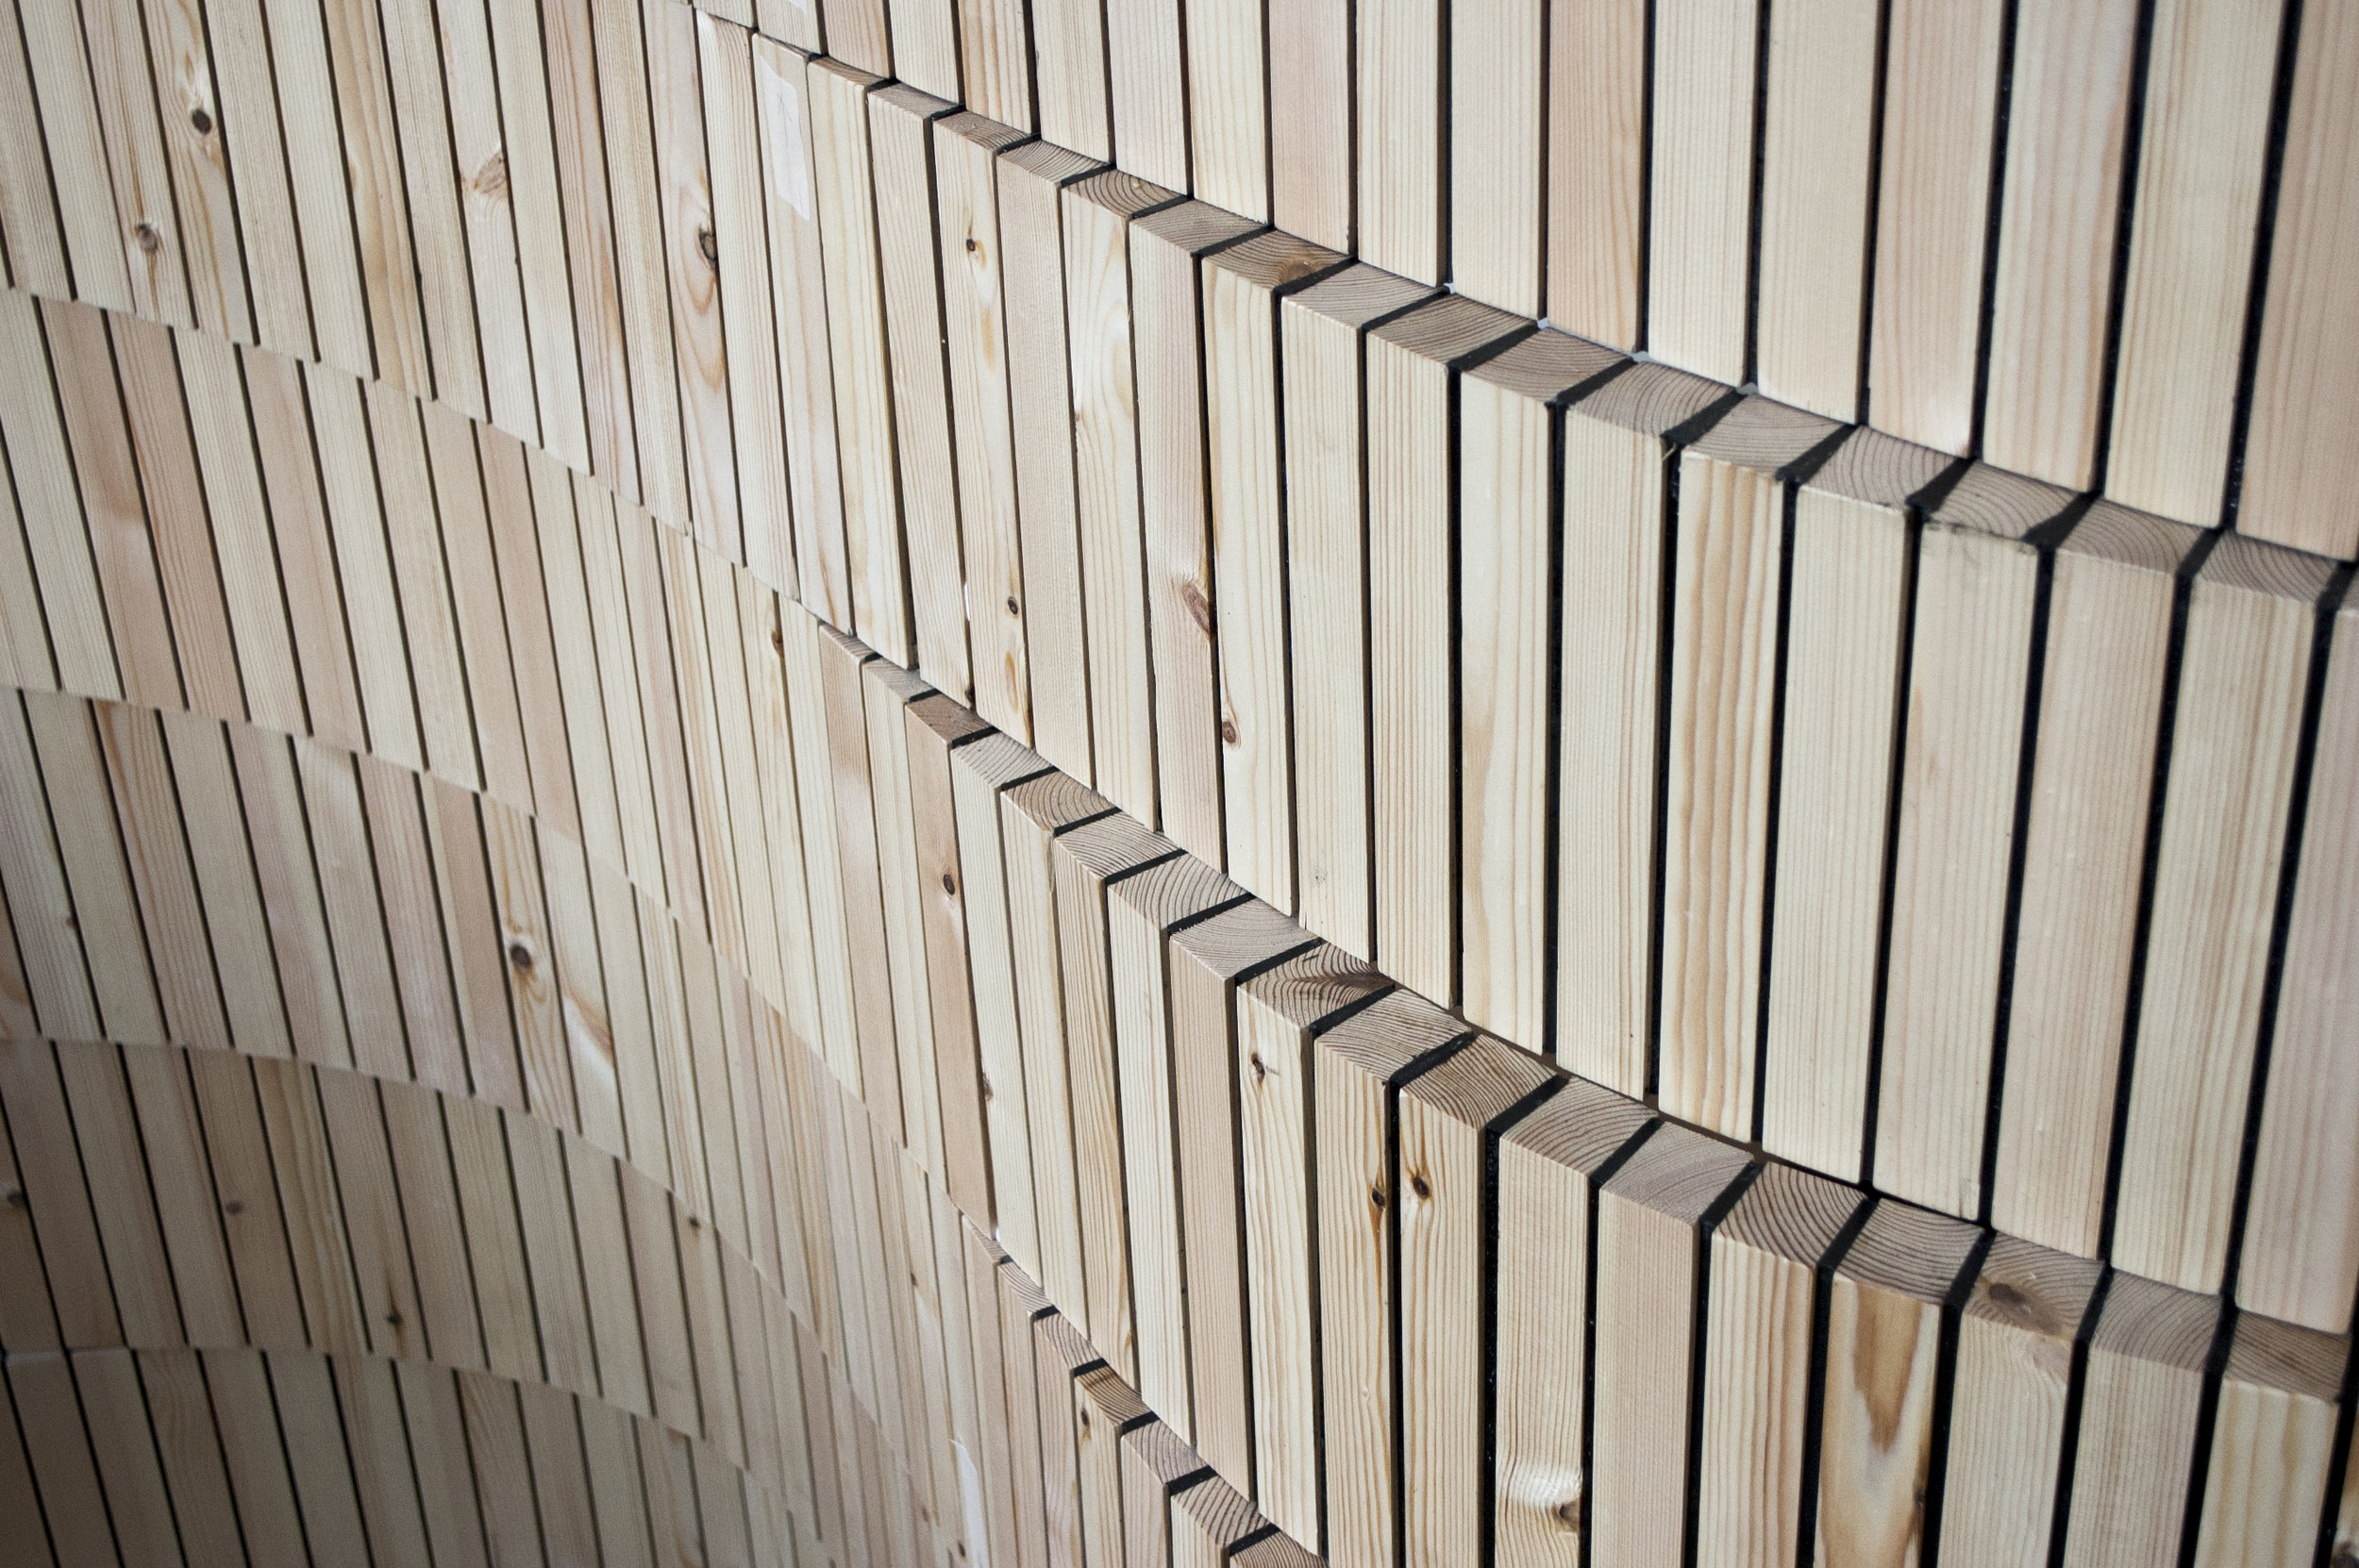 Wood Wall roomdivider - detail - David Derksen Design.jpg